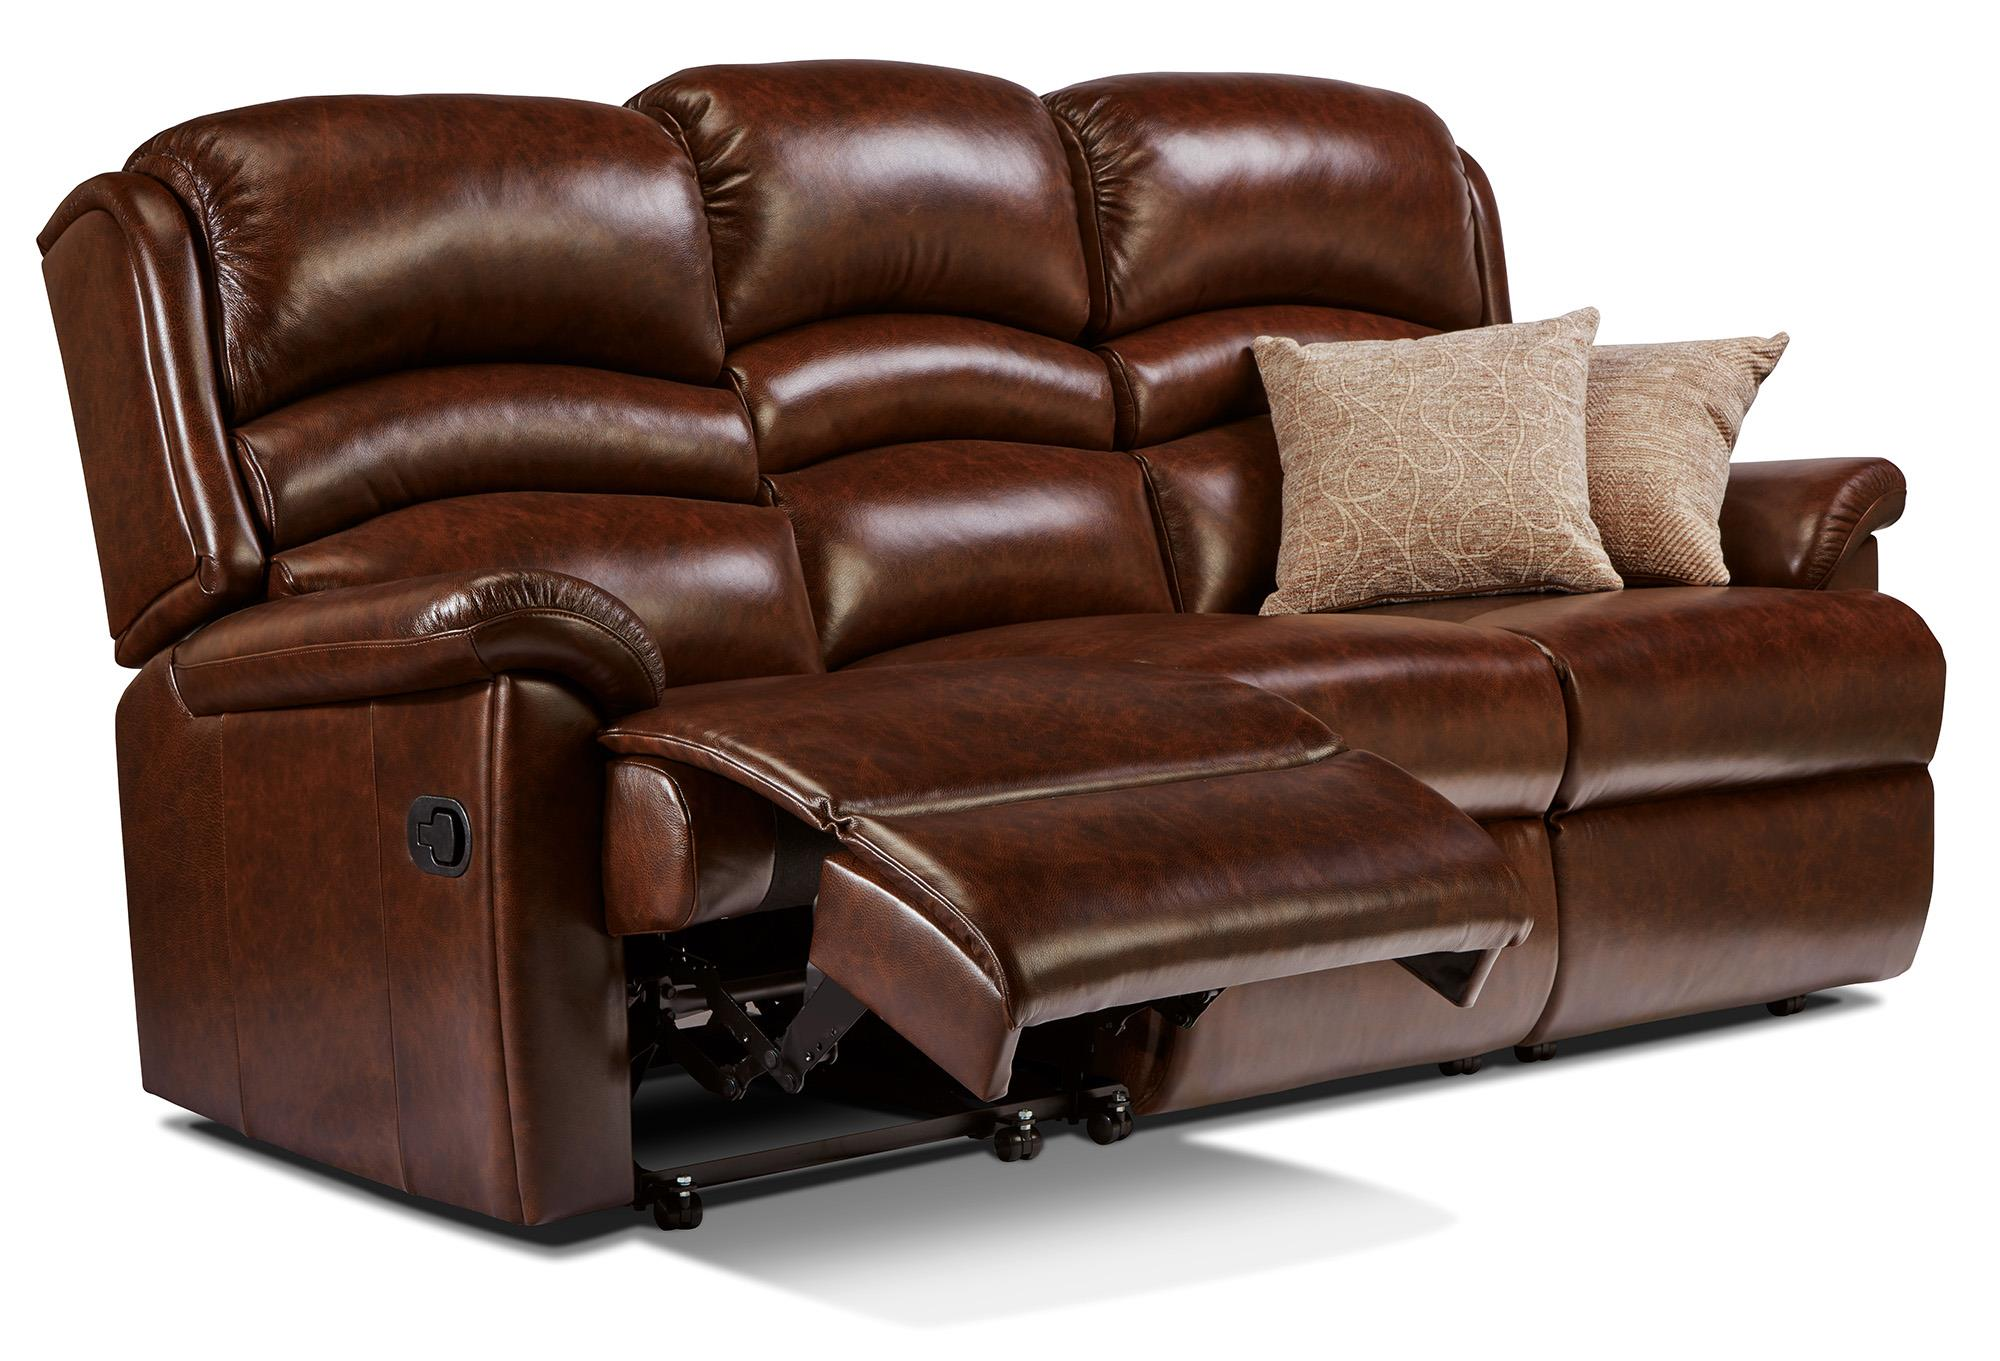 OLIVIA - Leather Reclining 3 Seat Settee